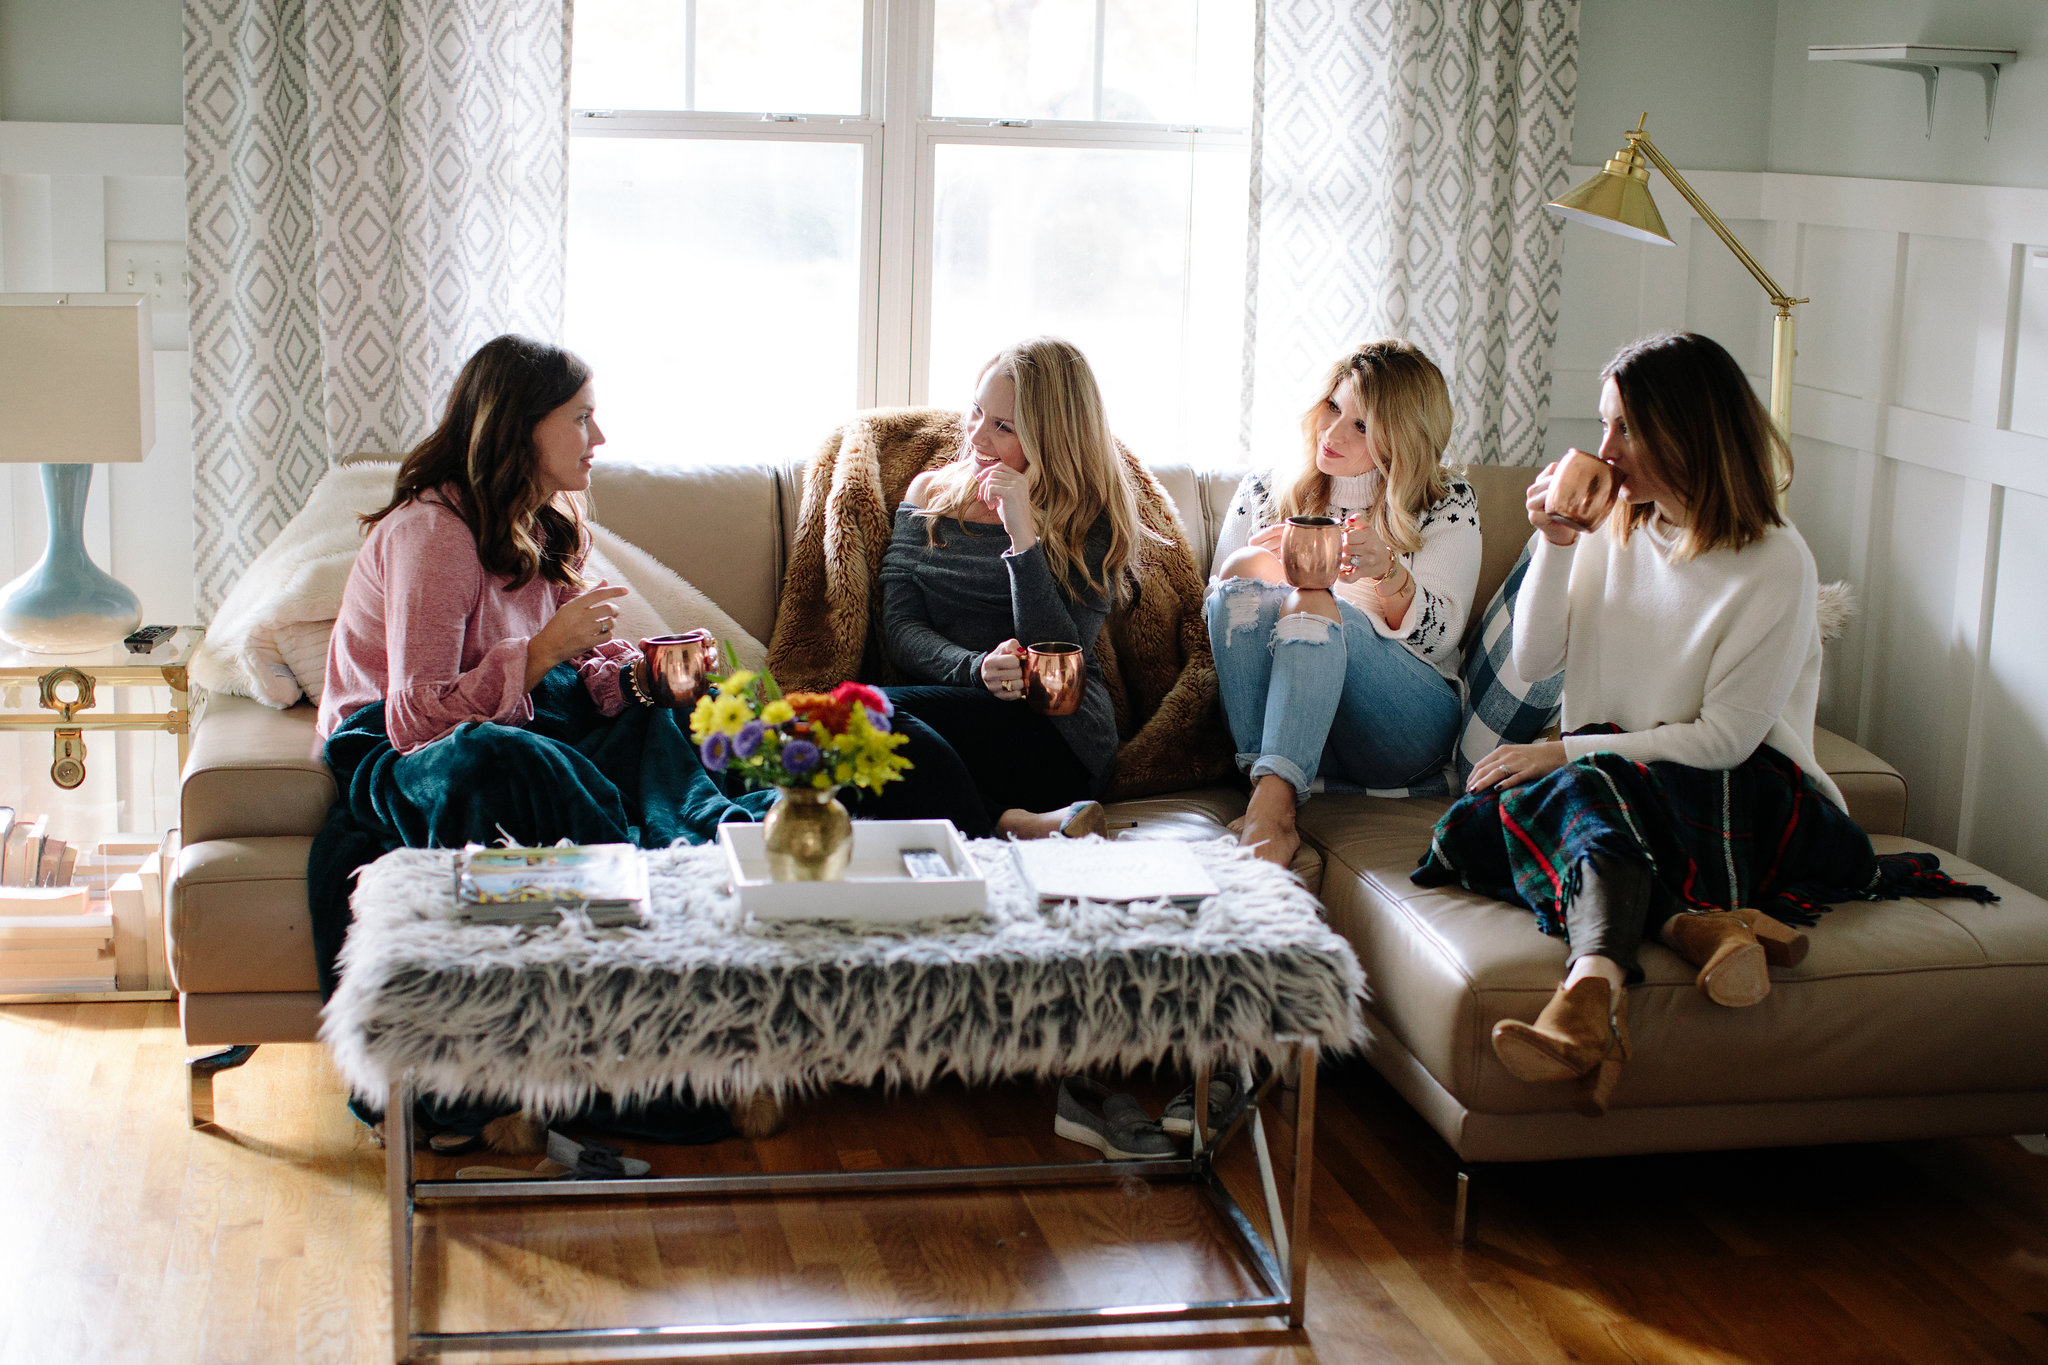 A Holiday Celebration with Diet Coke by North Carolina style blogger Every Chic Way